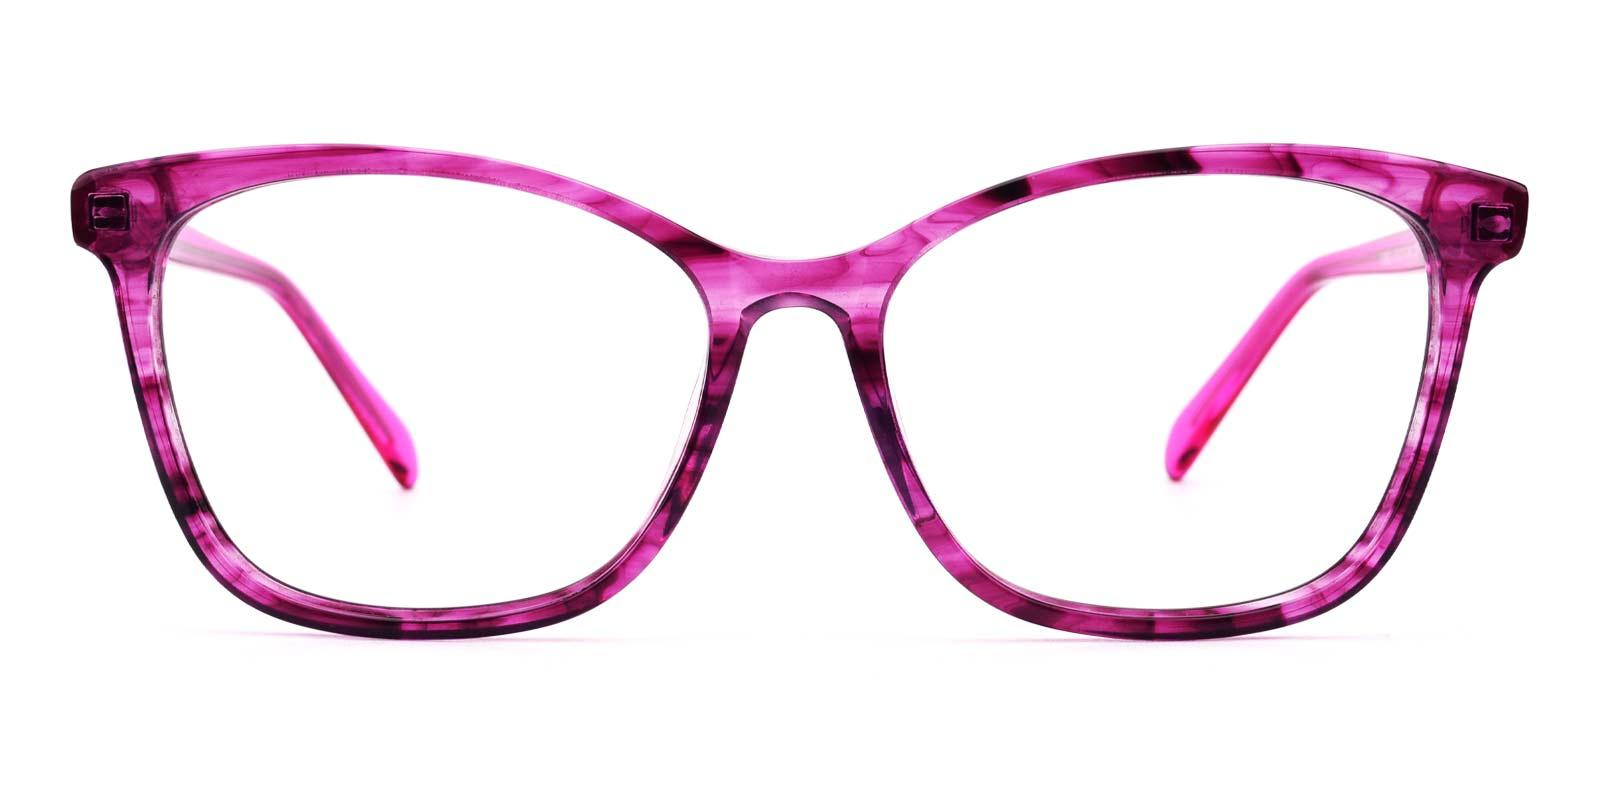 Poppy-Pink-Square-Acetate-Eyeglasses-additional2